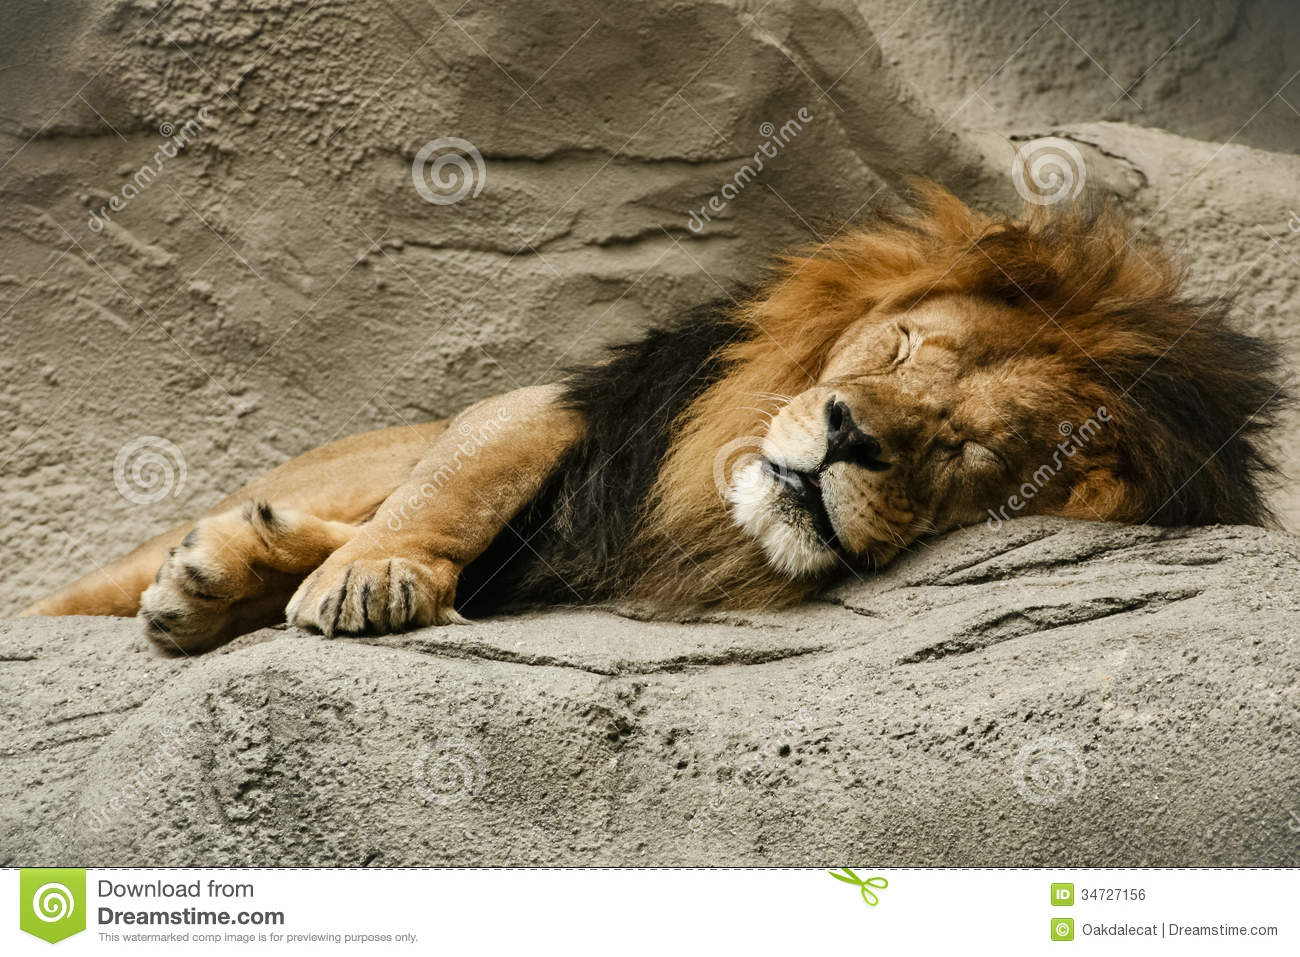 ... of this beautiful fully black maned lion sleeping comfortably on it